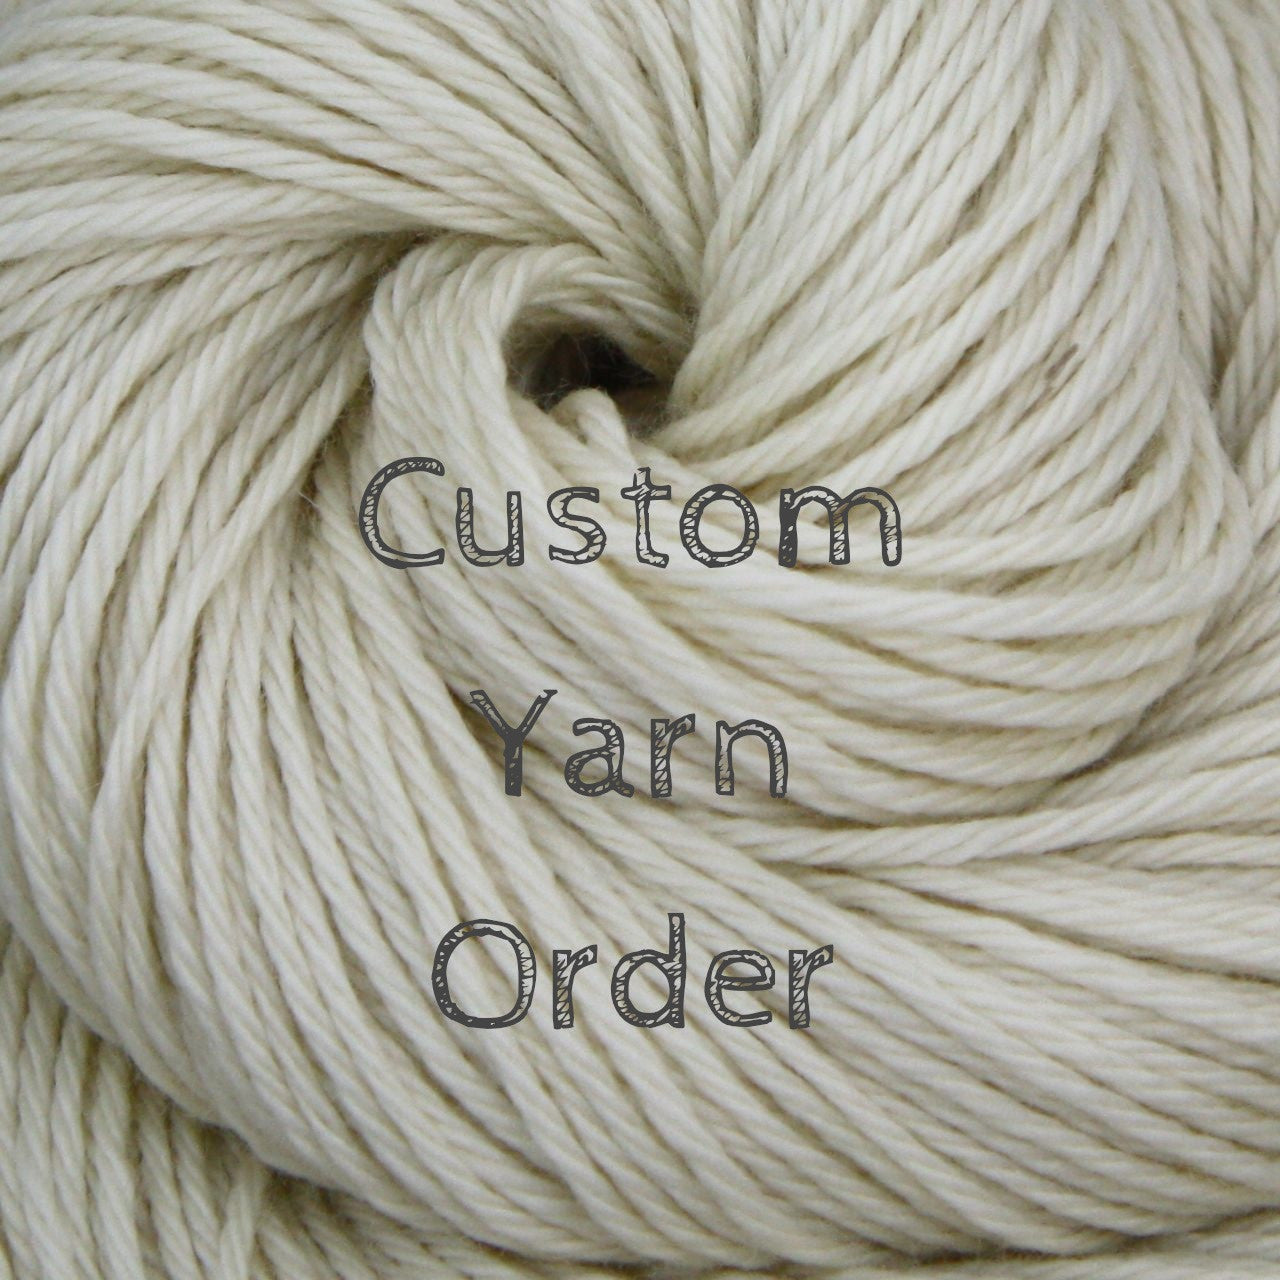 Custom Order for Bonny | Aquila Yarn | Colorway: Camo